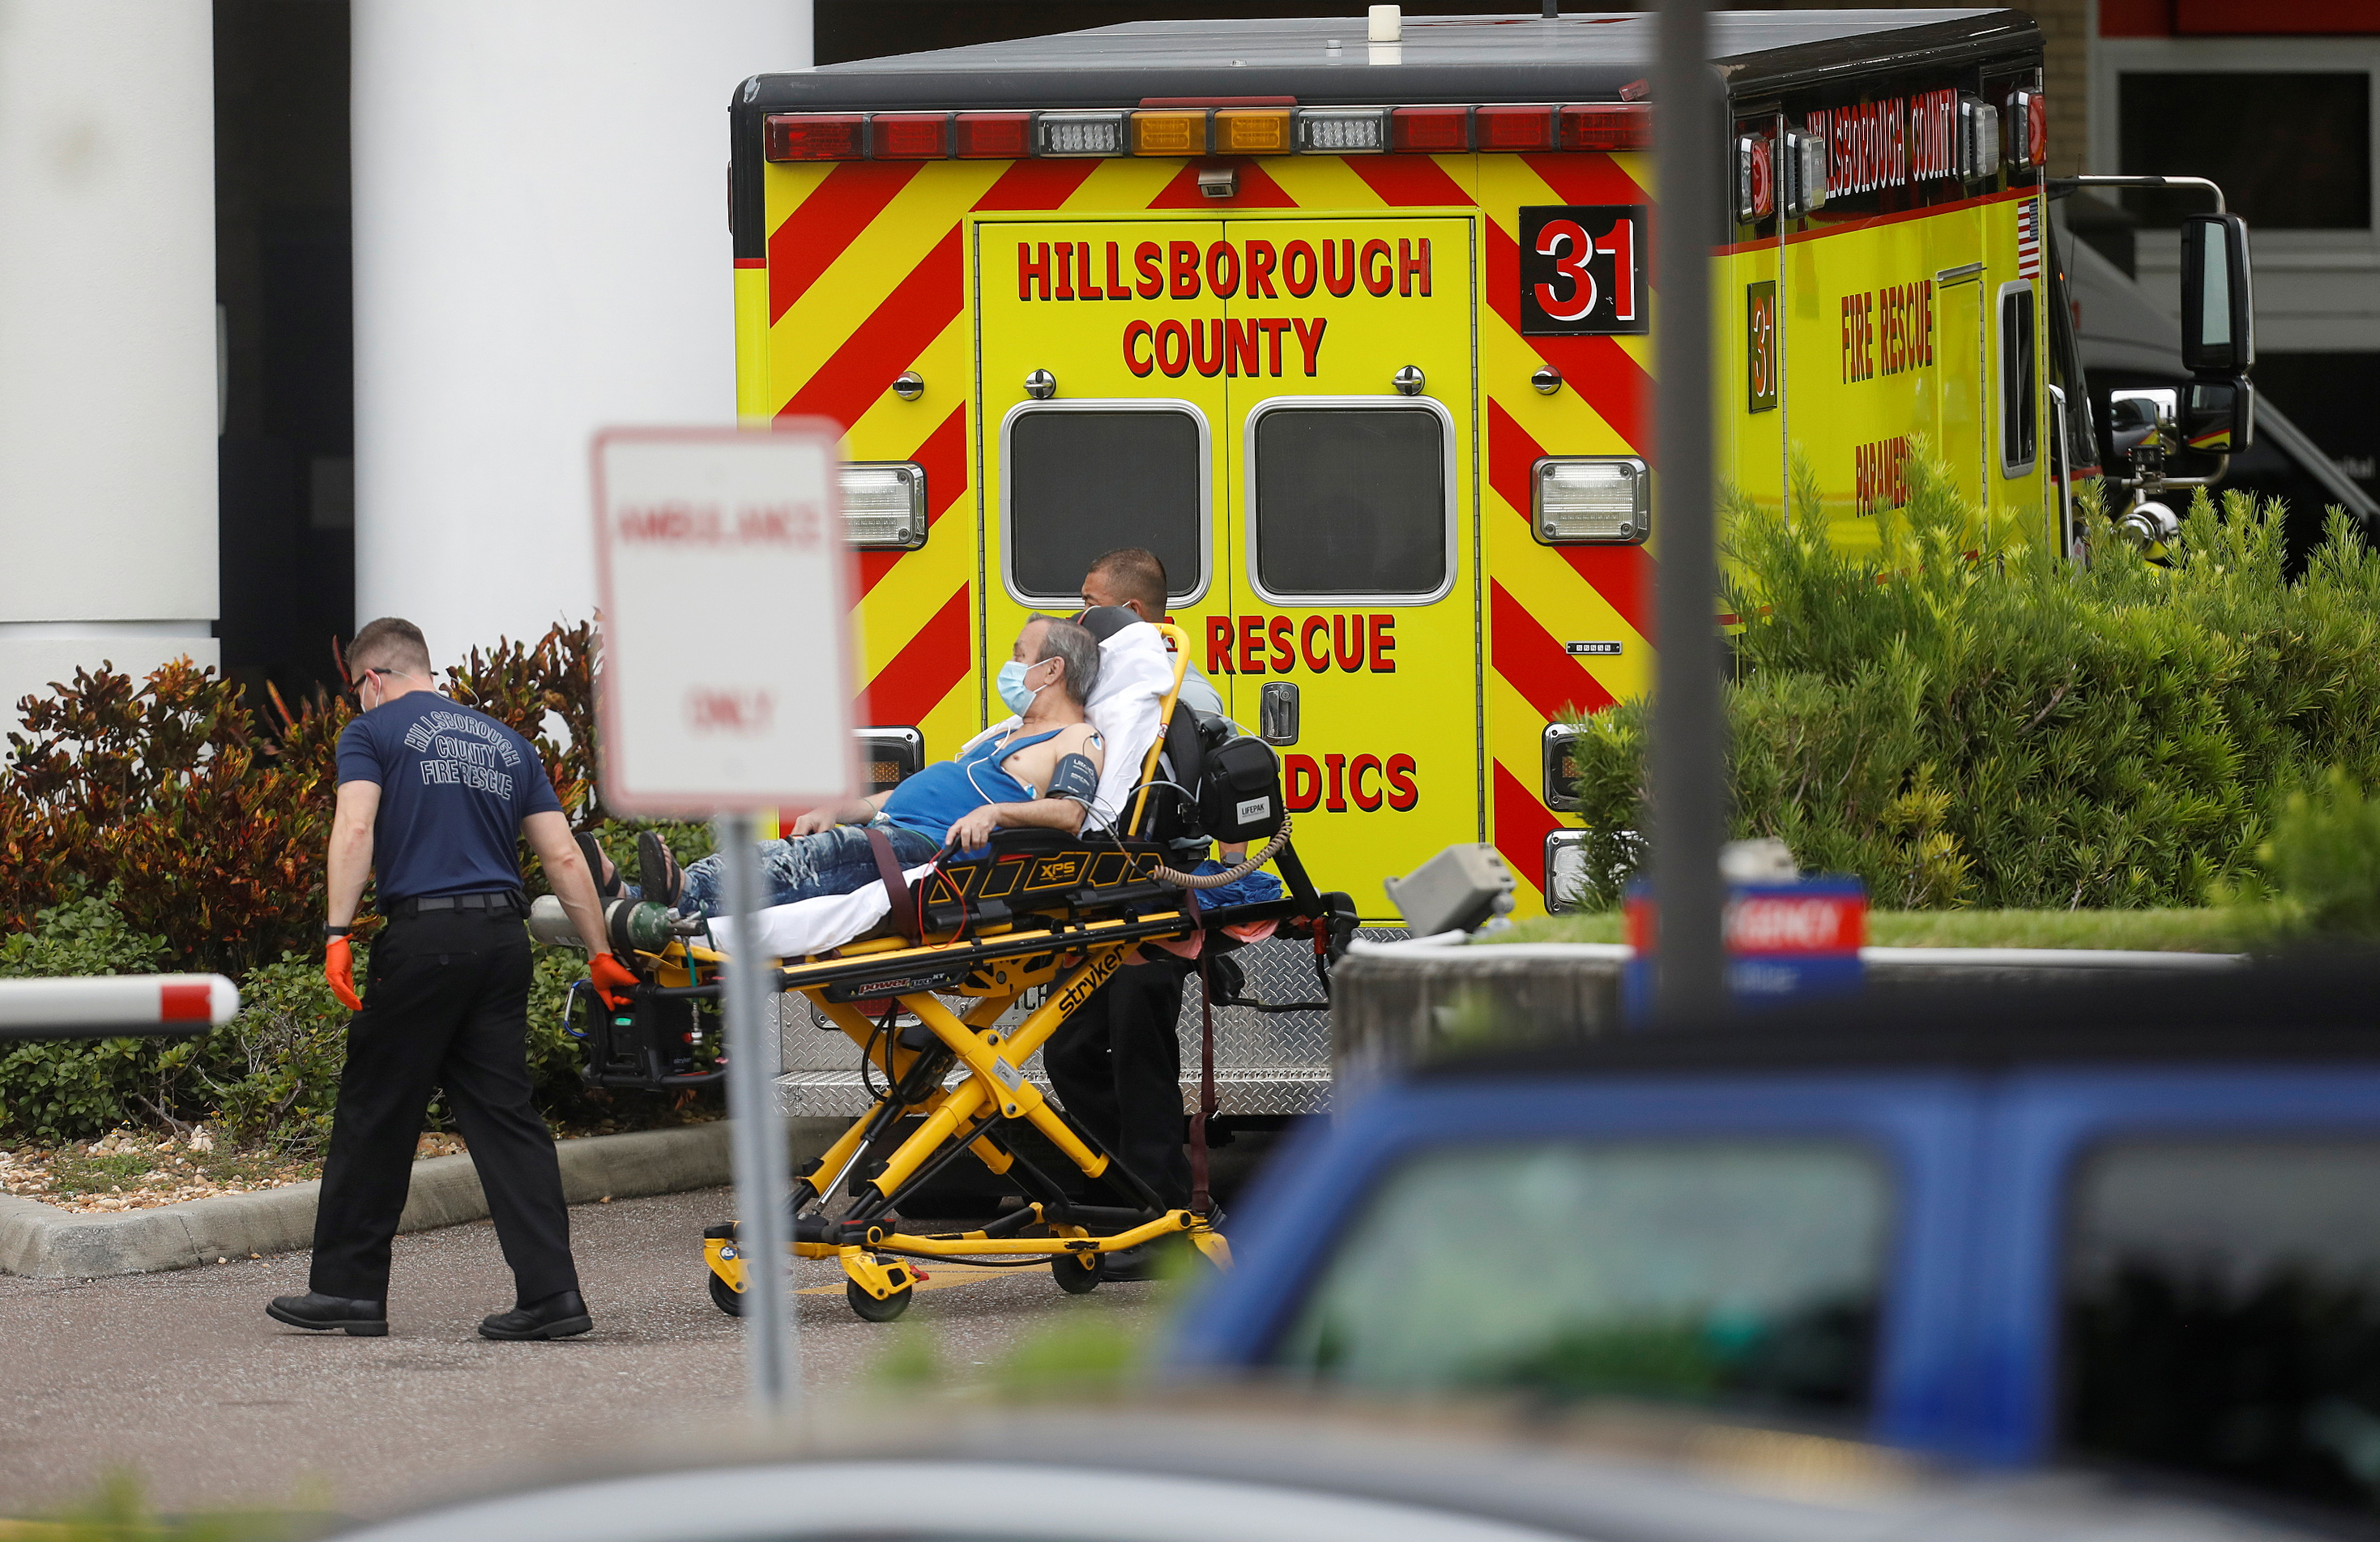 Hillsborough County Rescue first responders admit a patient to the emergency room at St. Joseph's Hospital amid a coronavirus disease (COVID-19) outbreak in Tampa, Florida, U.S., August 3, 2021.  REUTERS/Octavio Jones/Files